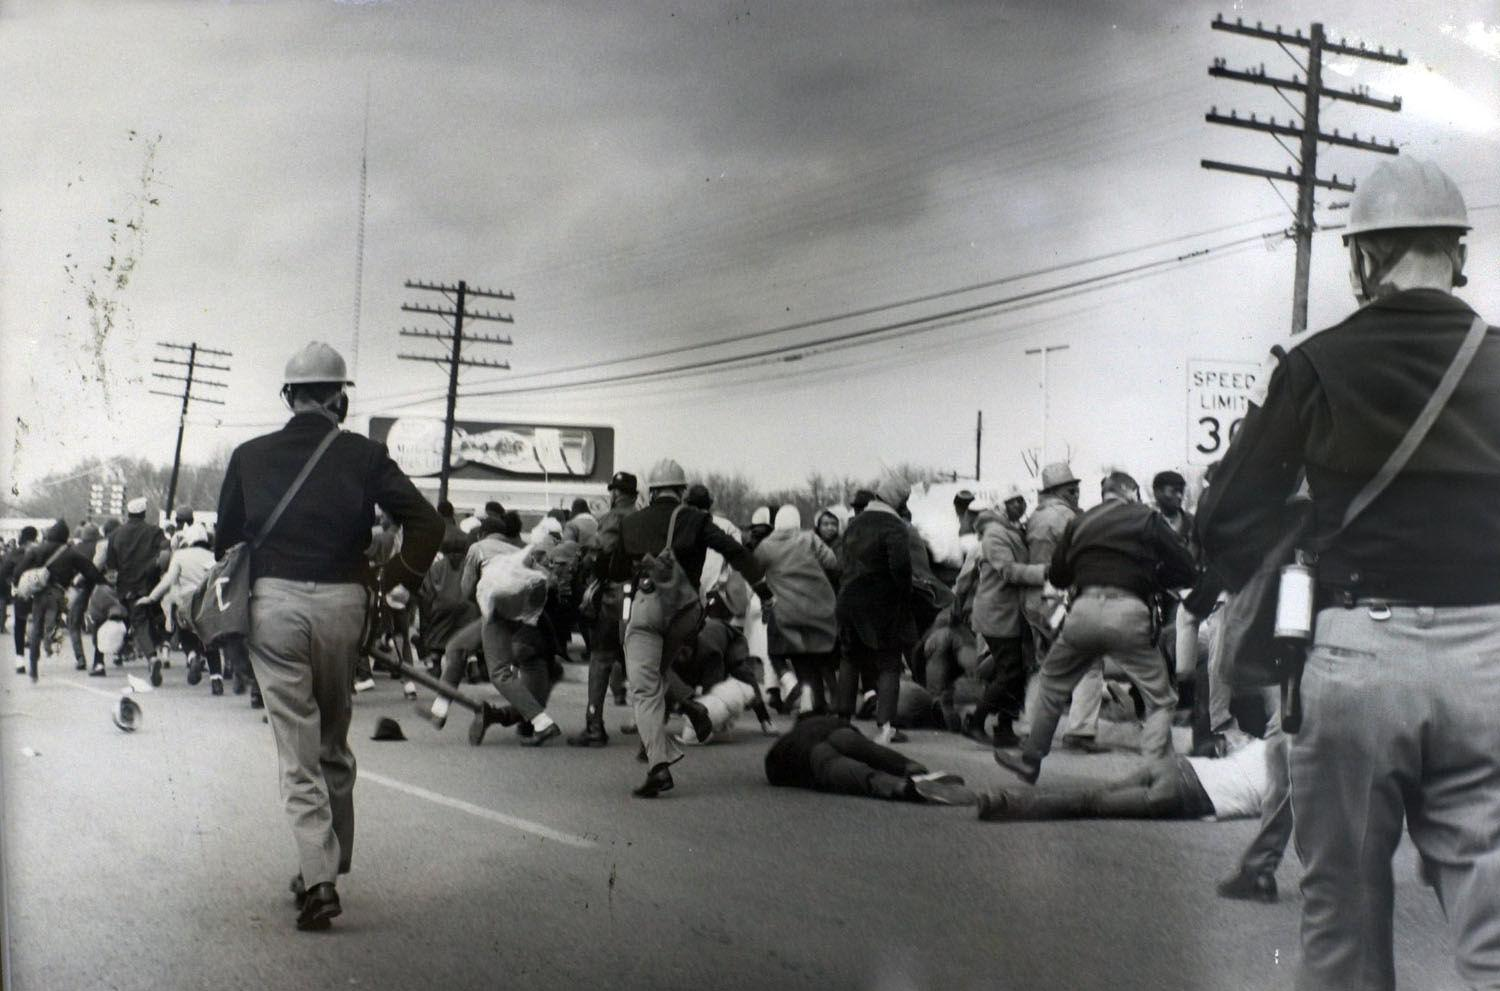 As+the+final+dates+of+the+protests%E2%80%99+50th+anniversary+approach%2C+University+alumnus+John+Baird+reflects+on+his+experiences+at+the+protests+in+Selma%2C+Alabama.